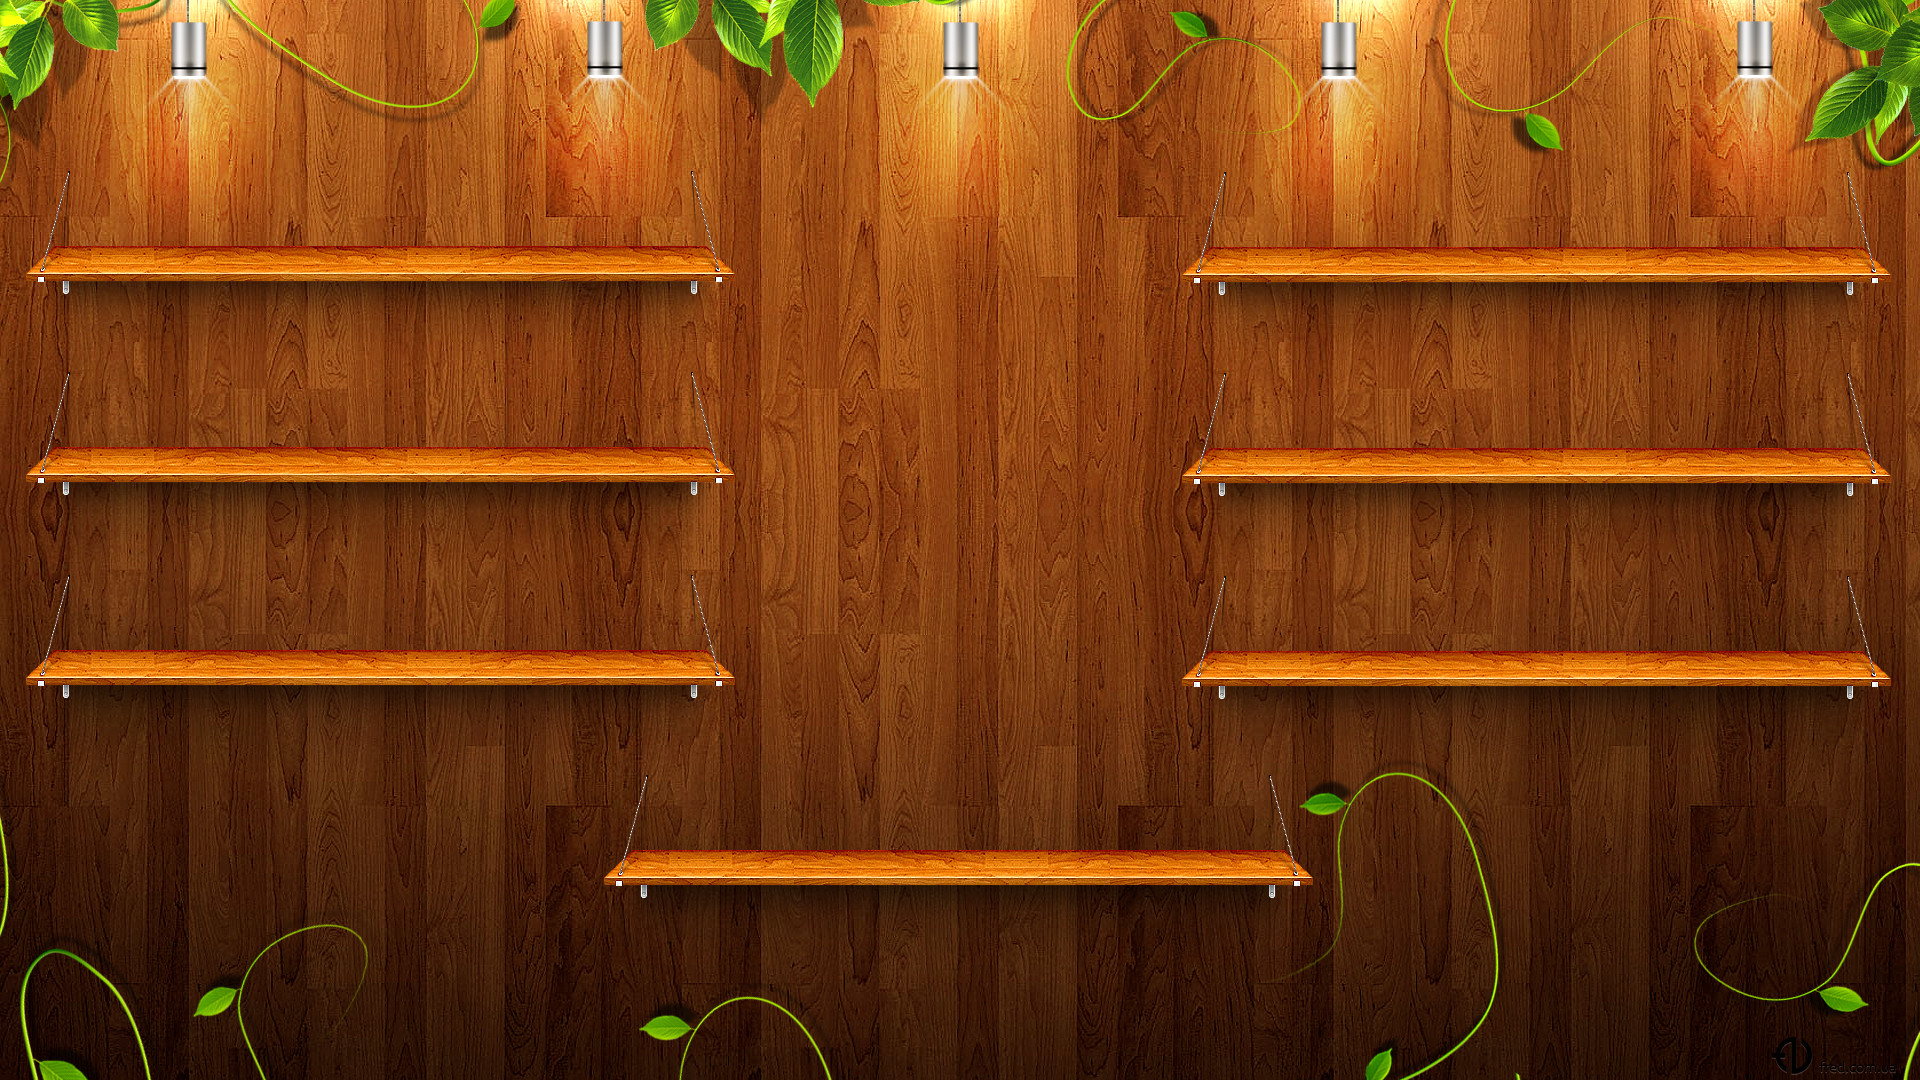 1920x1080 Wooden shelves wallpapers and images - wallpapers, pictures, photos